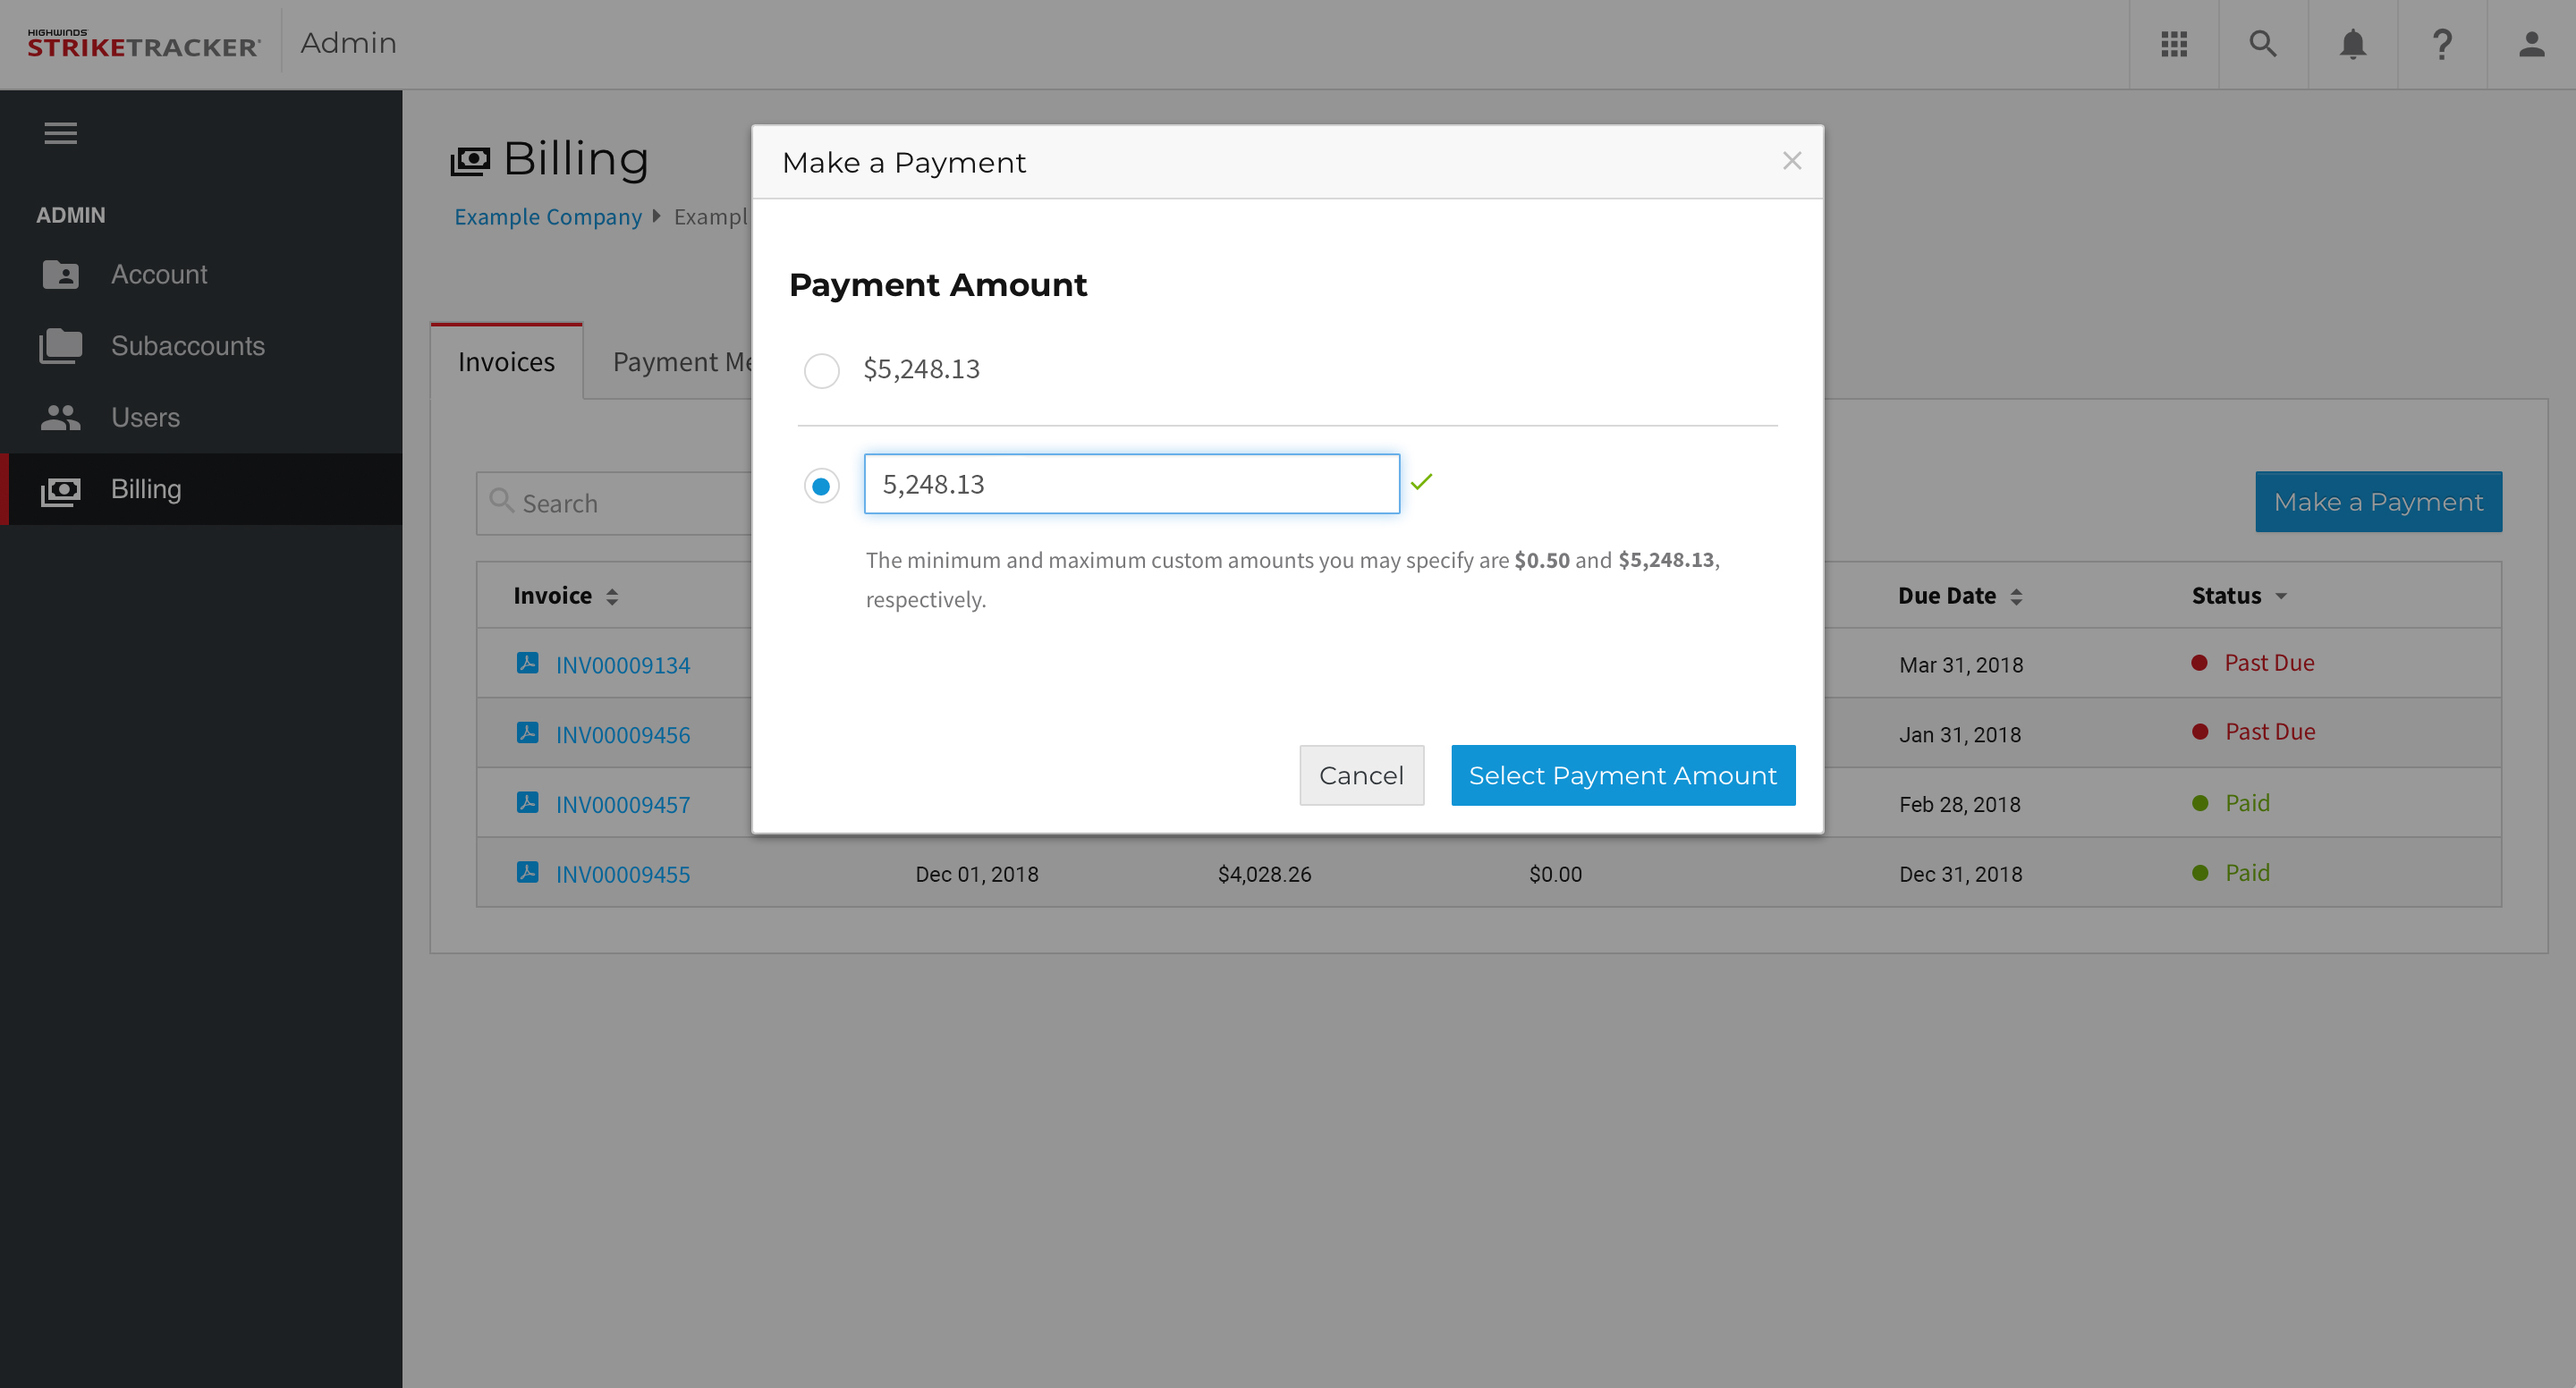 StrikeTracker - Billing - Make a Payment Select Amount